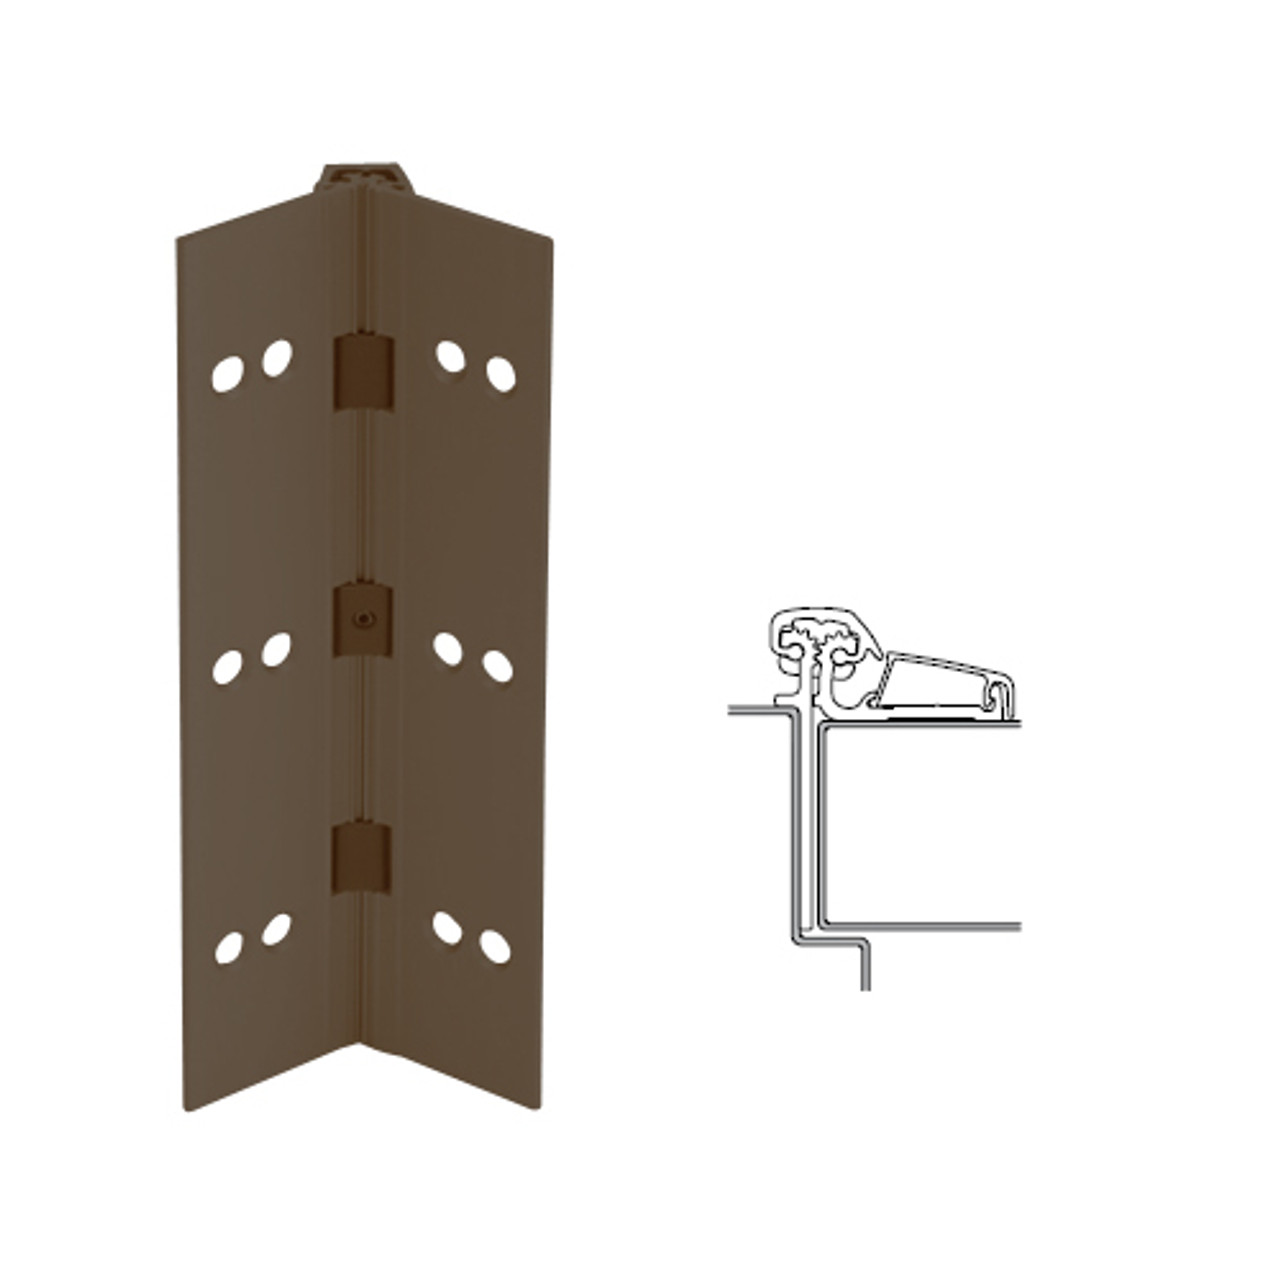 054XY-313AN-95-SECWDWD IVES Adjustable Half Surface Continuous Geared Hinges with Security Screws - Hex Pin Drive in Dark Bronze Anodized